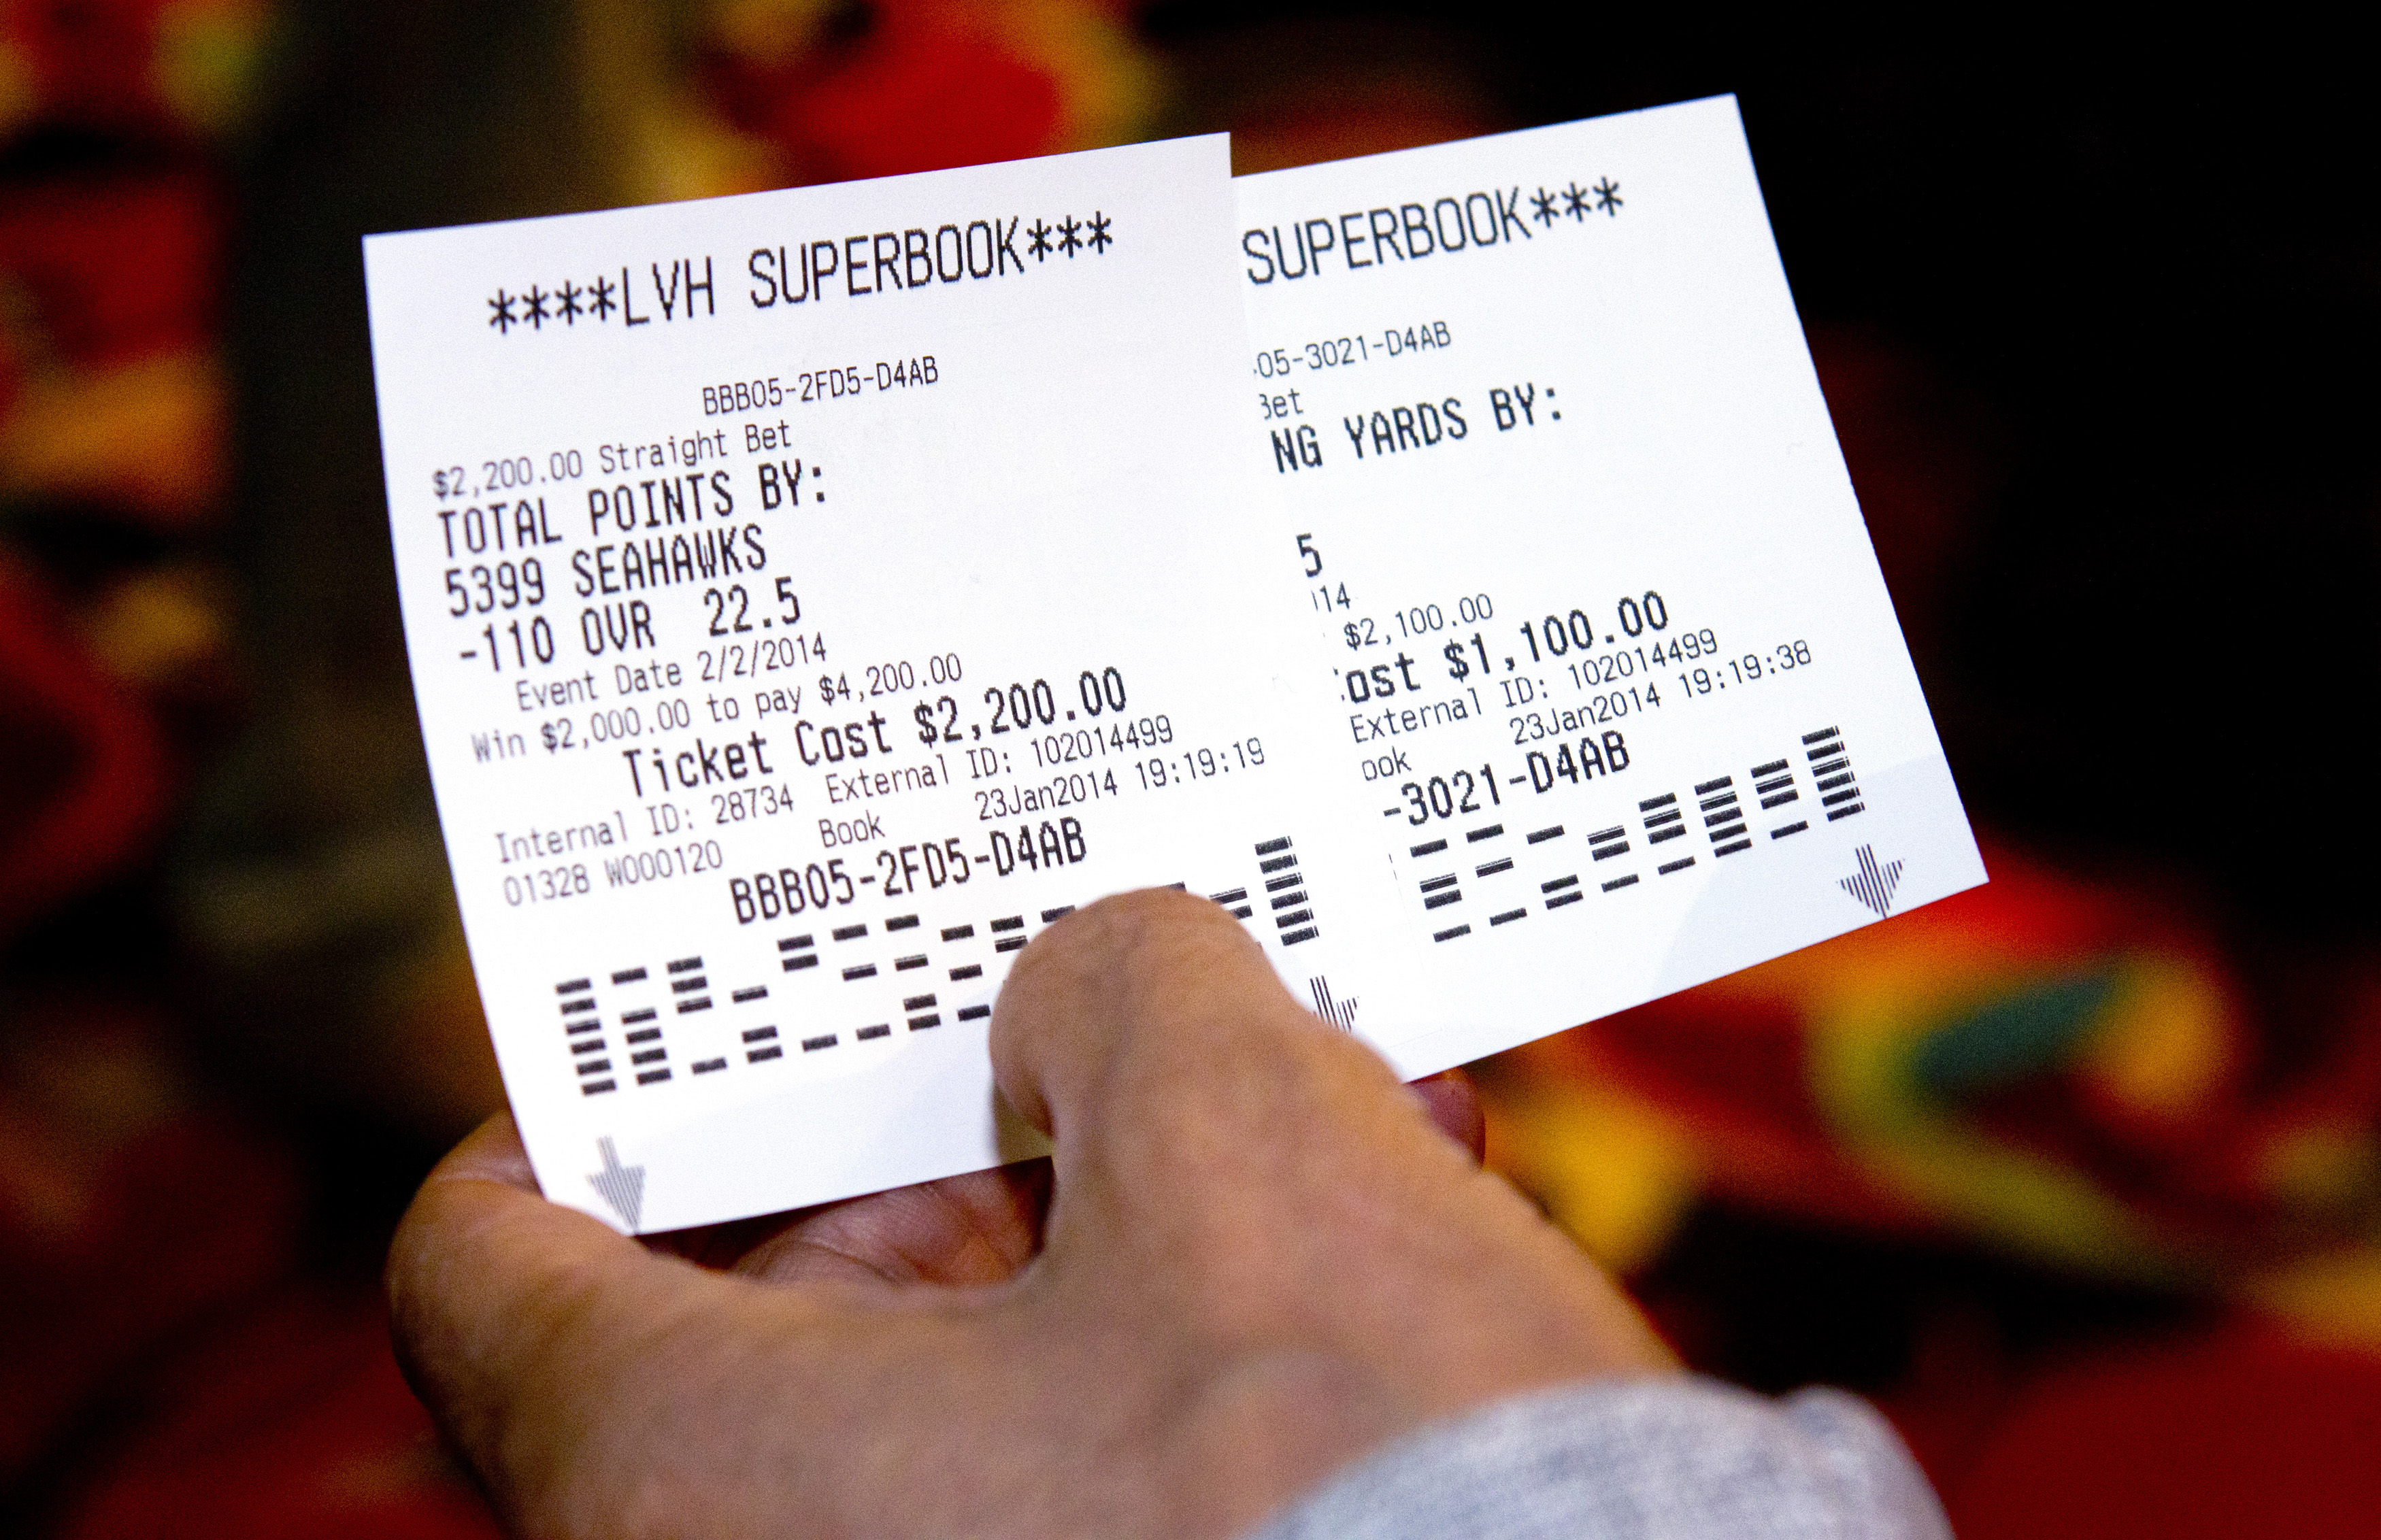 super bowl bet packers vs panthers 2015 tickets